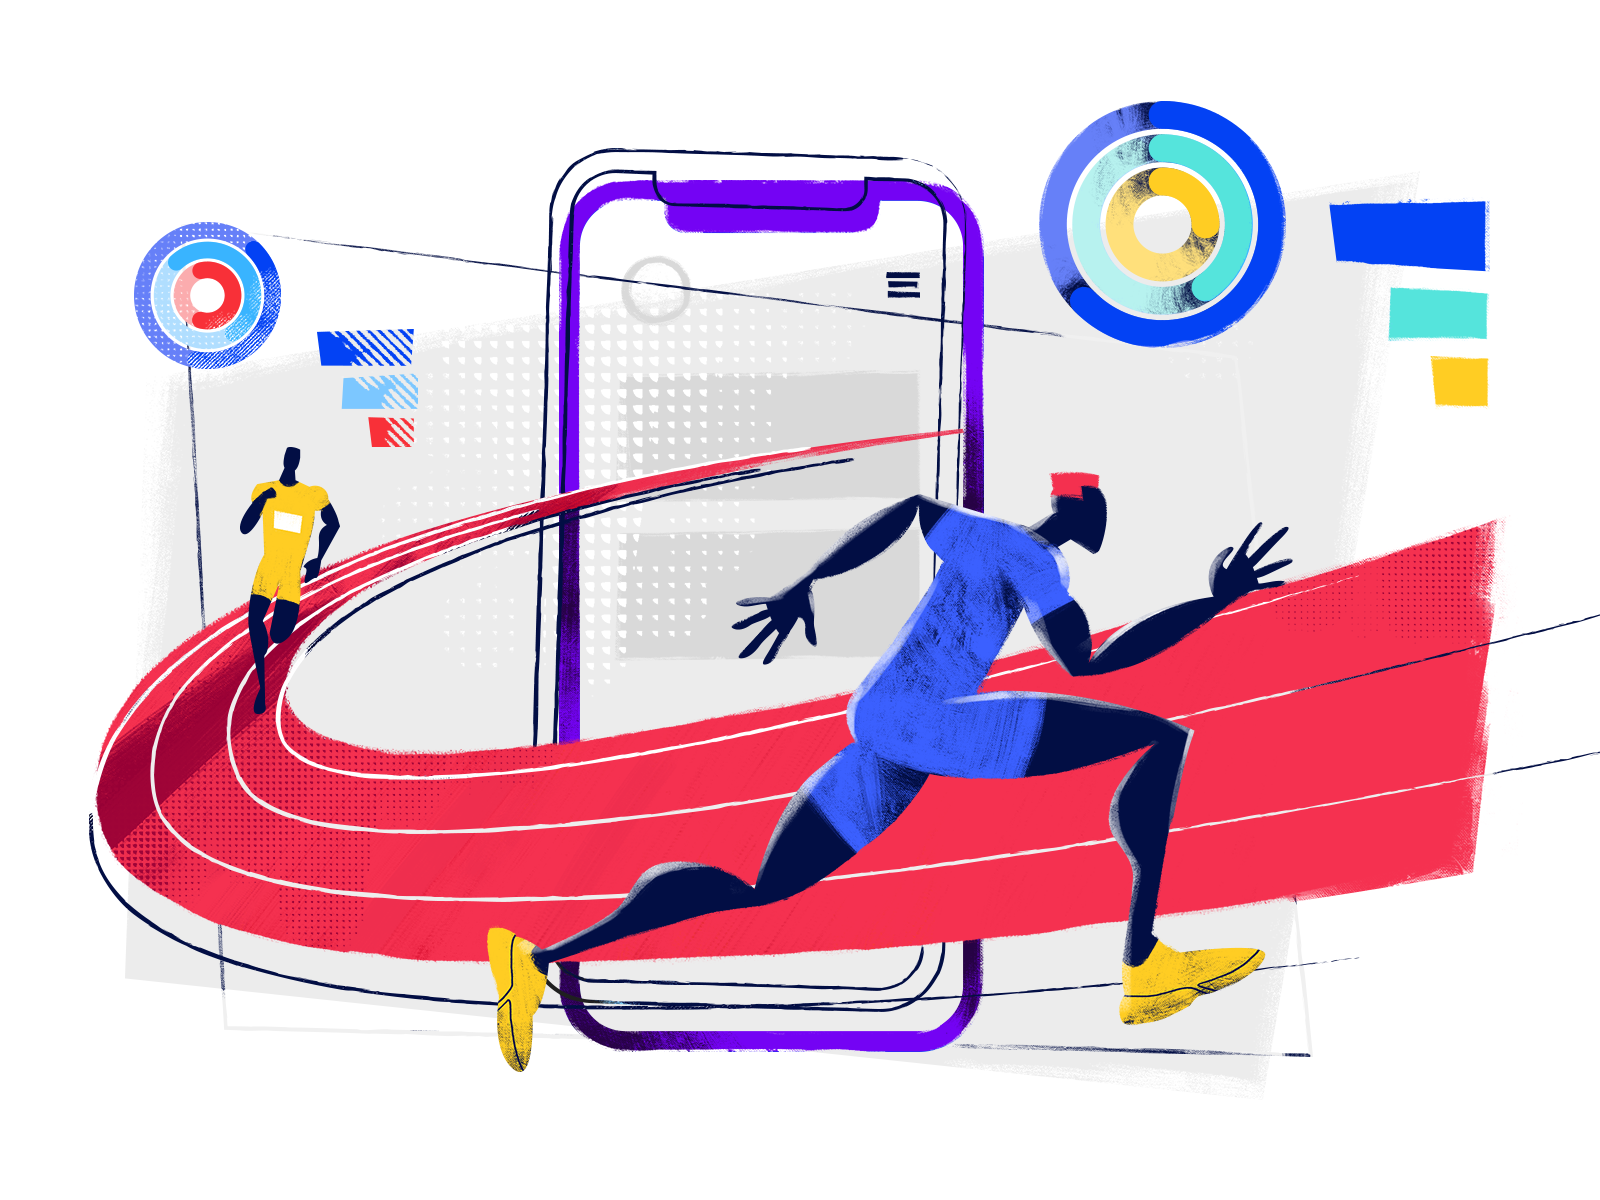 Big Review of Major UI Design Trends for Web and Mobile in 2020